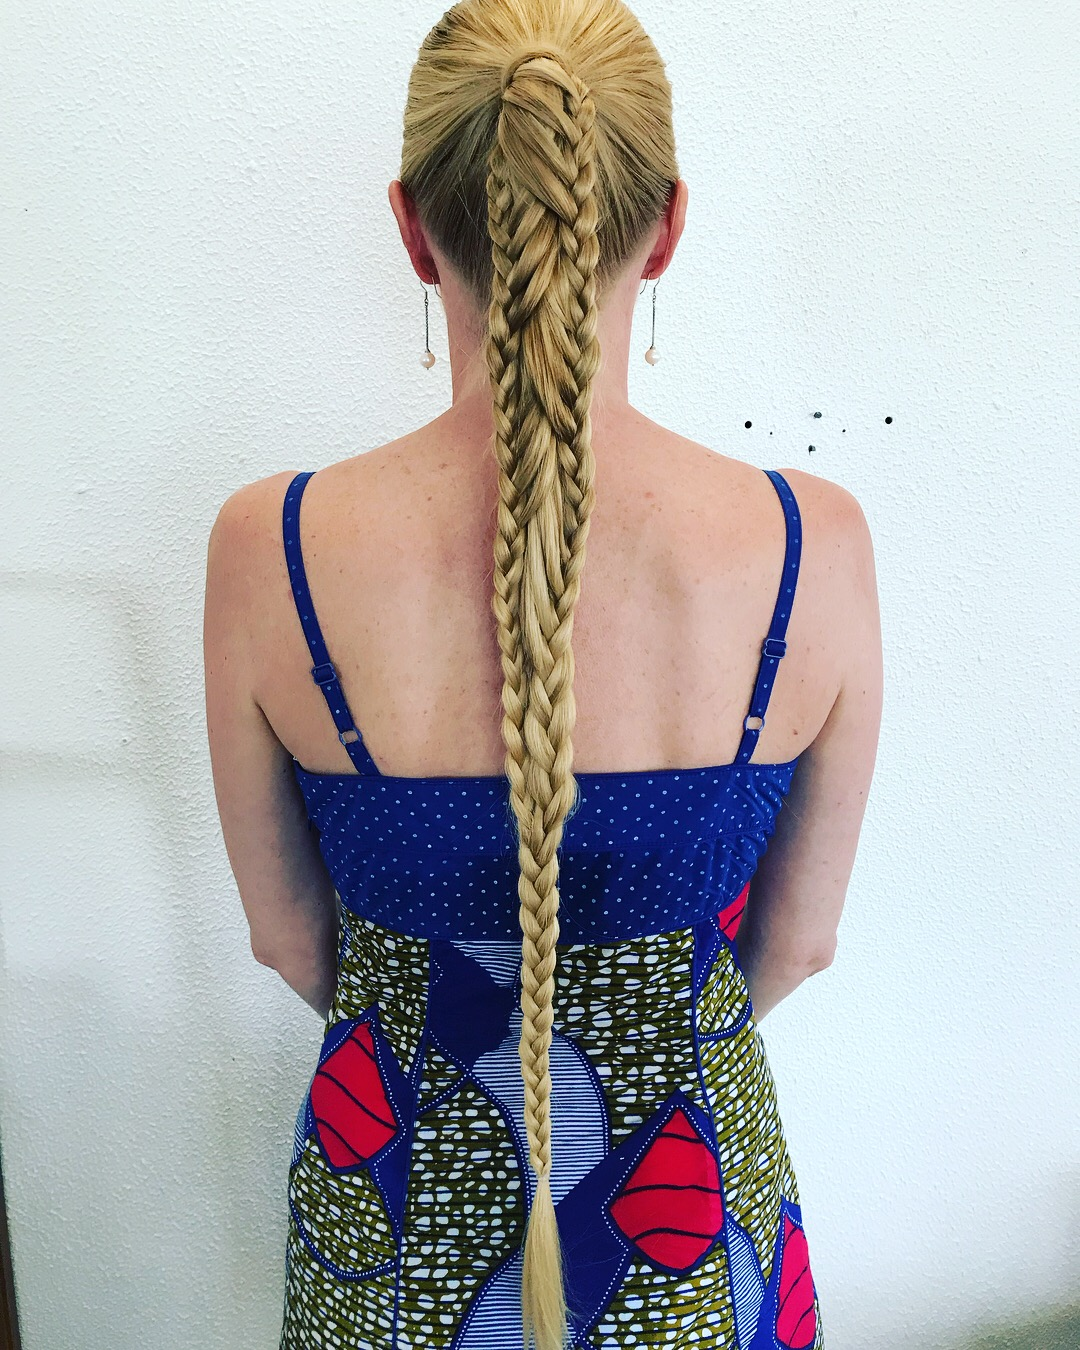 Hair Braiding Salon Australia Kellie Turner 7.JPG